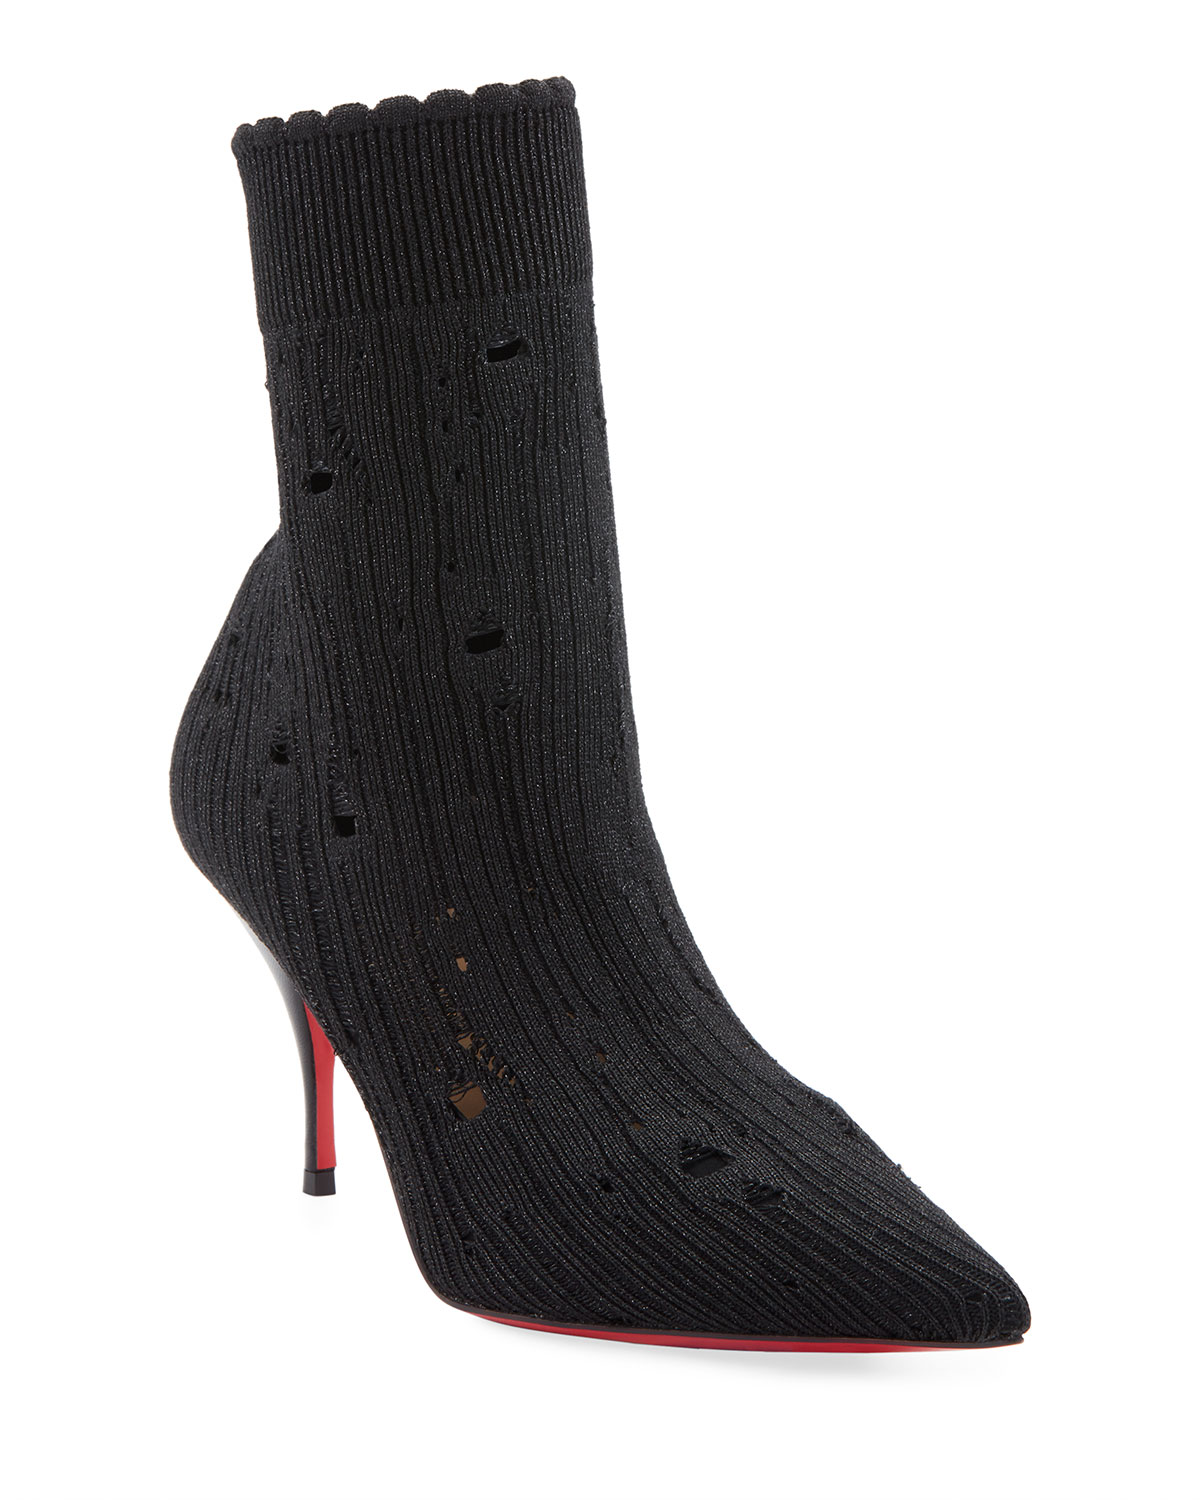 Sandrine Distressed Red Sole Booties